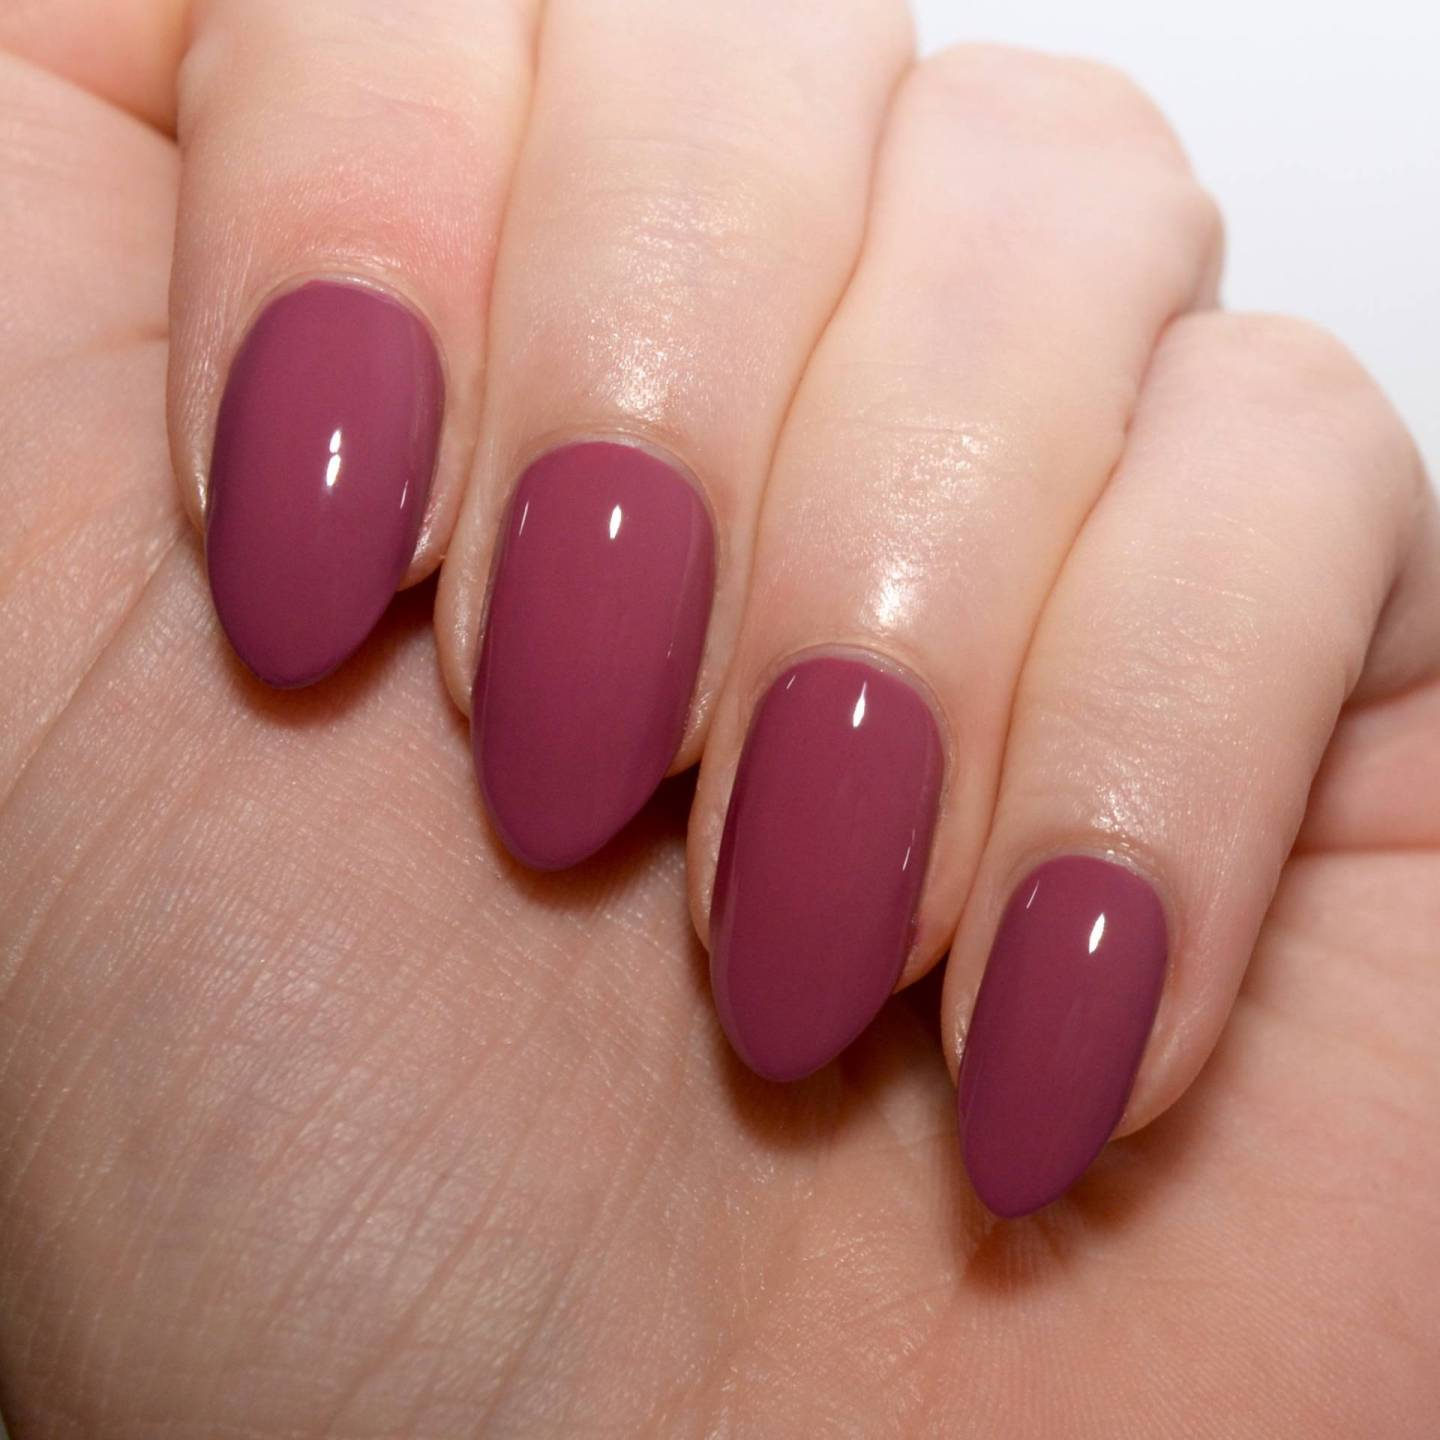 Morgan Taylor 'Figure 8s and Heartbreaks' - a beautiful muted wine coloured nail polish.